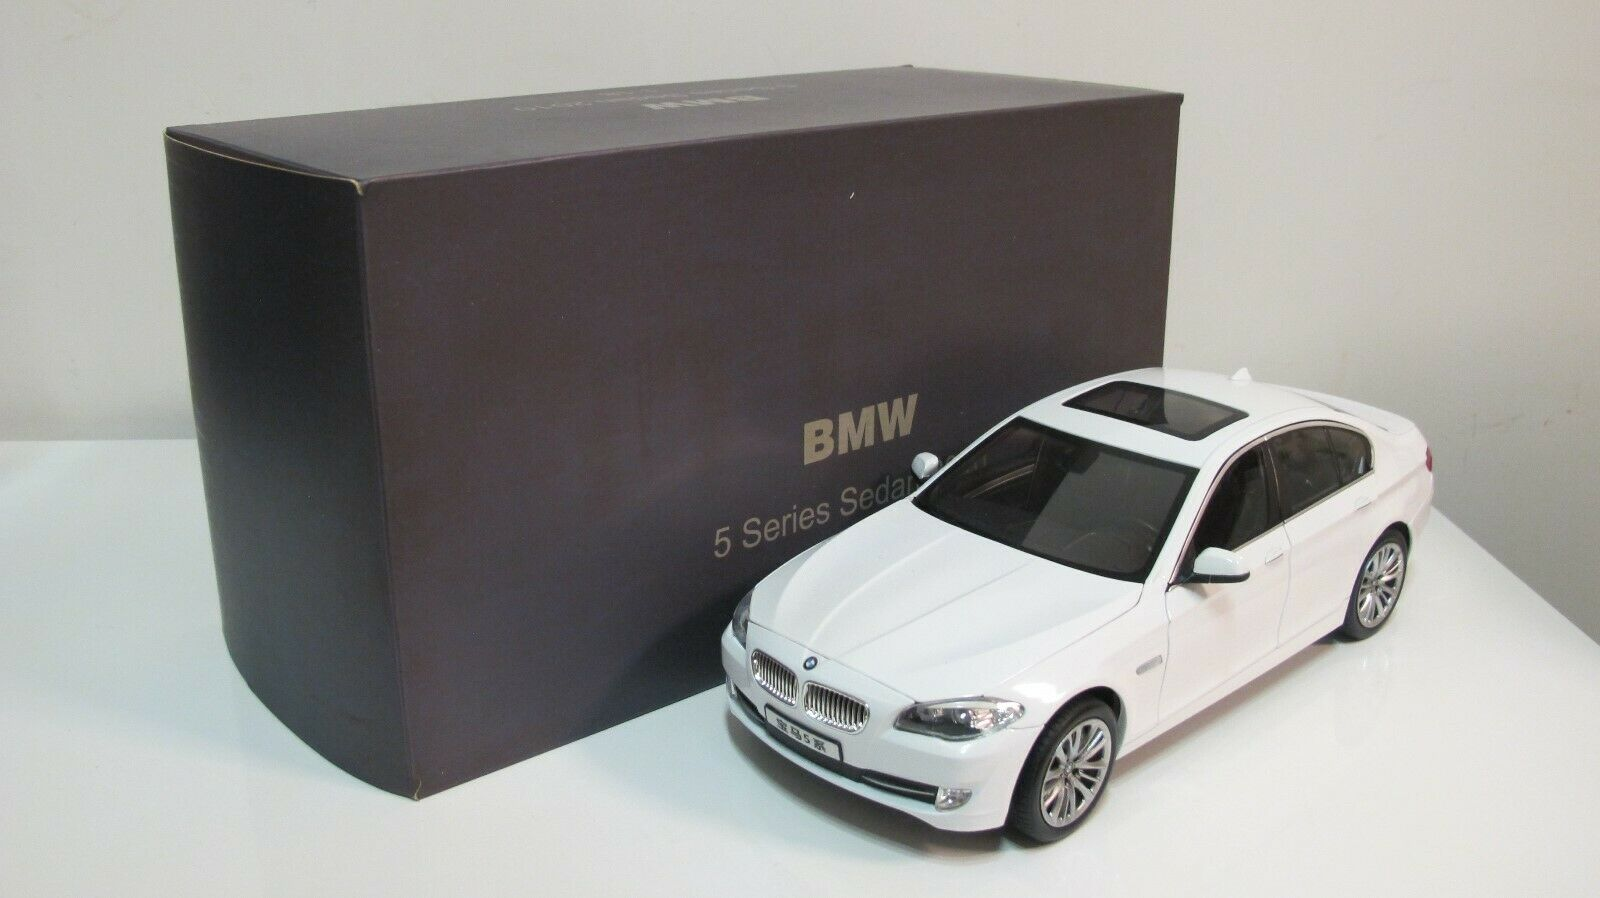 1 18 Norev 2010 BMW serie 550i 5 F10 BERLINA BIANCA Diecast Auto Dealer scatola